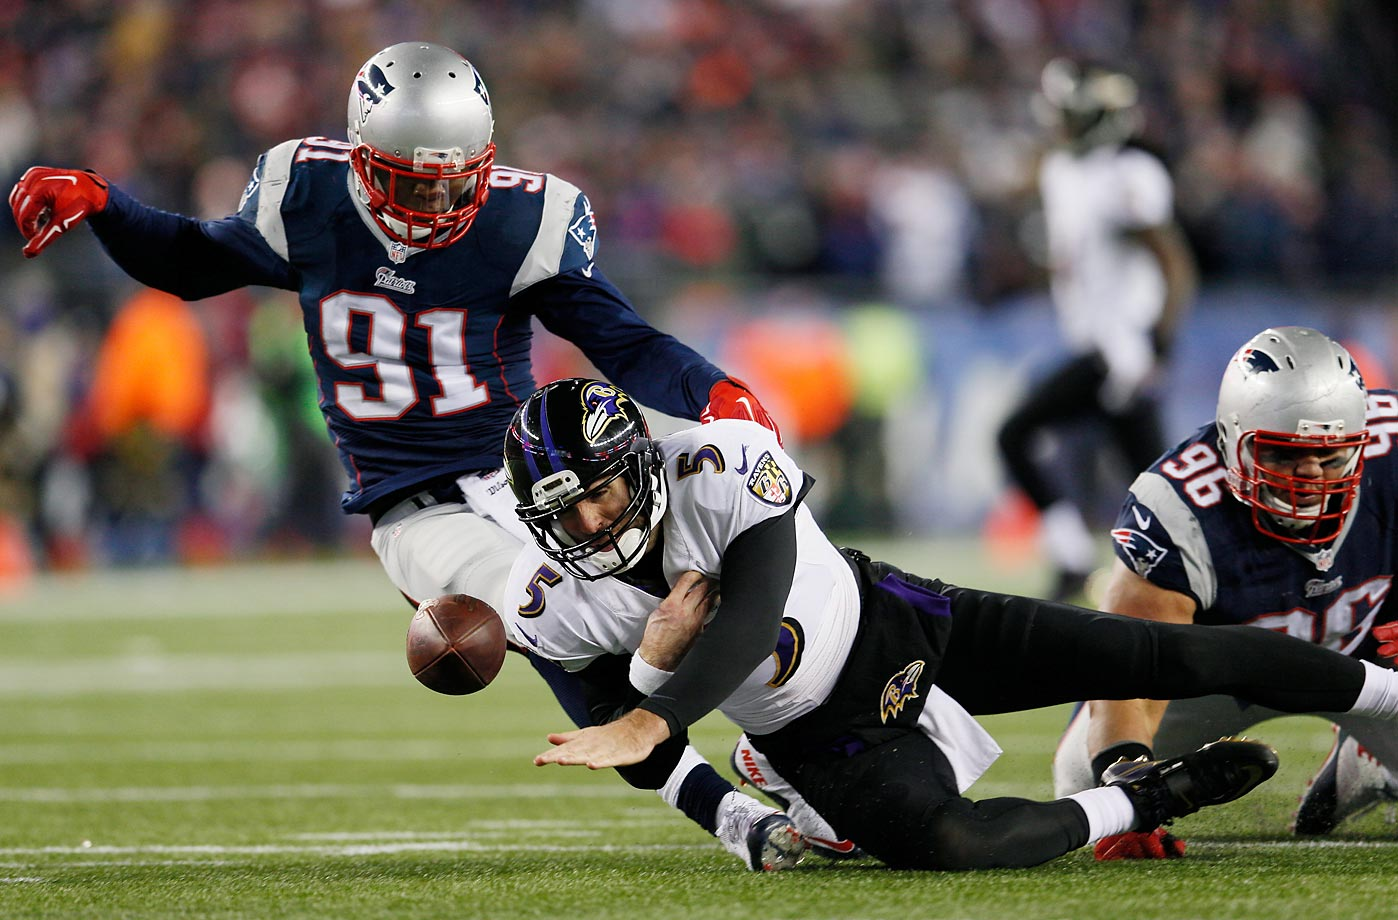 Baltimore Ravens quarterback Joe Flacco fumbles against the New England Patriots during their AFC Divisional Playoff game.